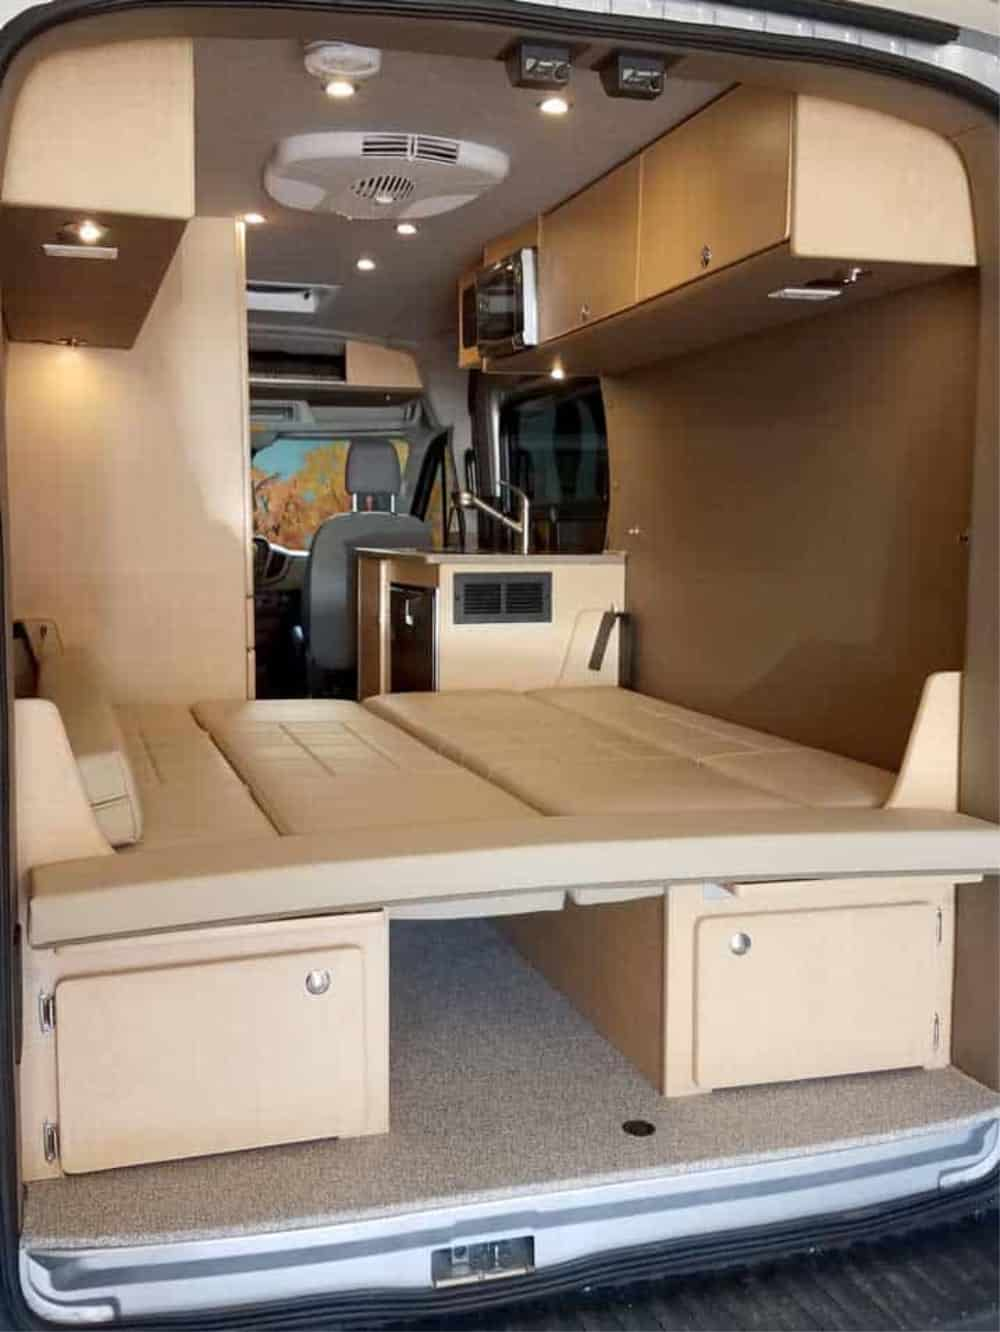 the twin beds folded down to make a larger campervan bed